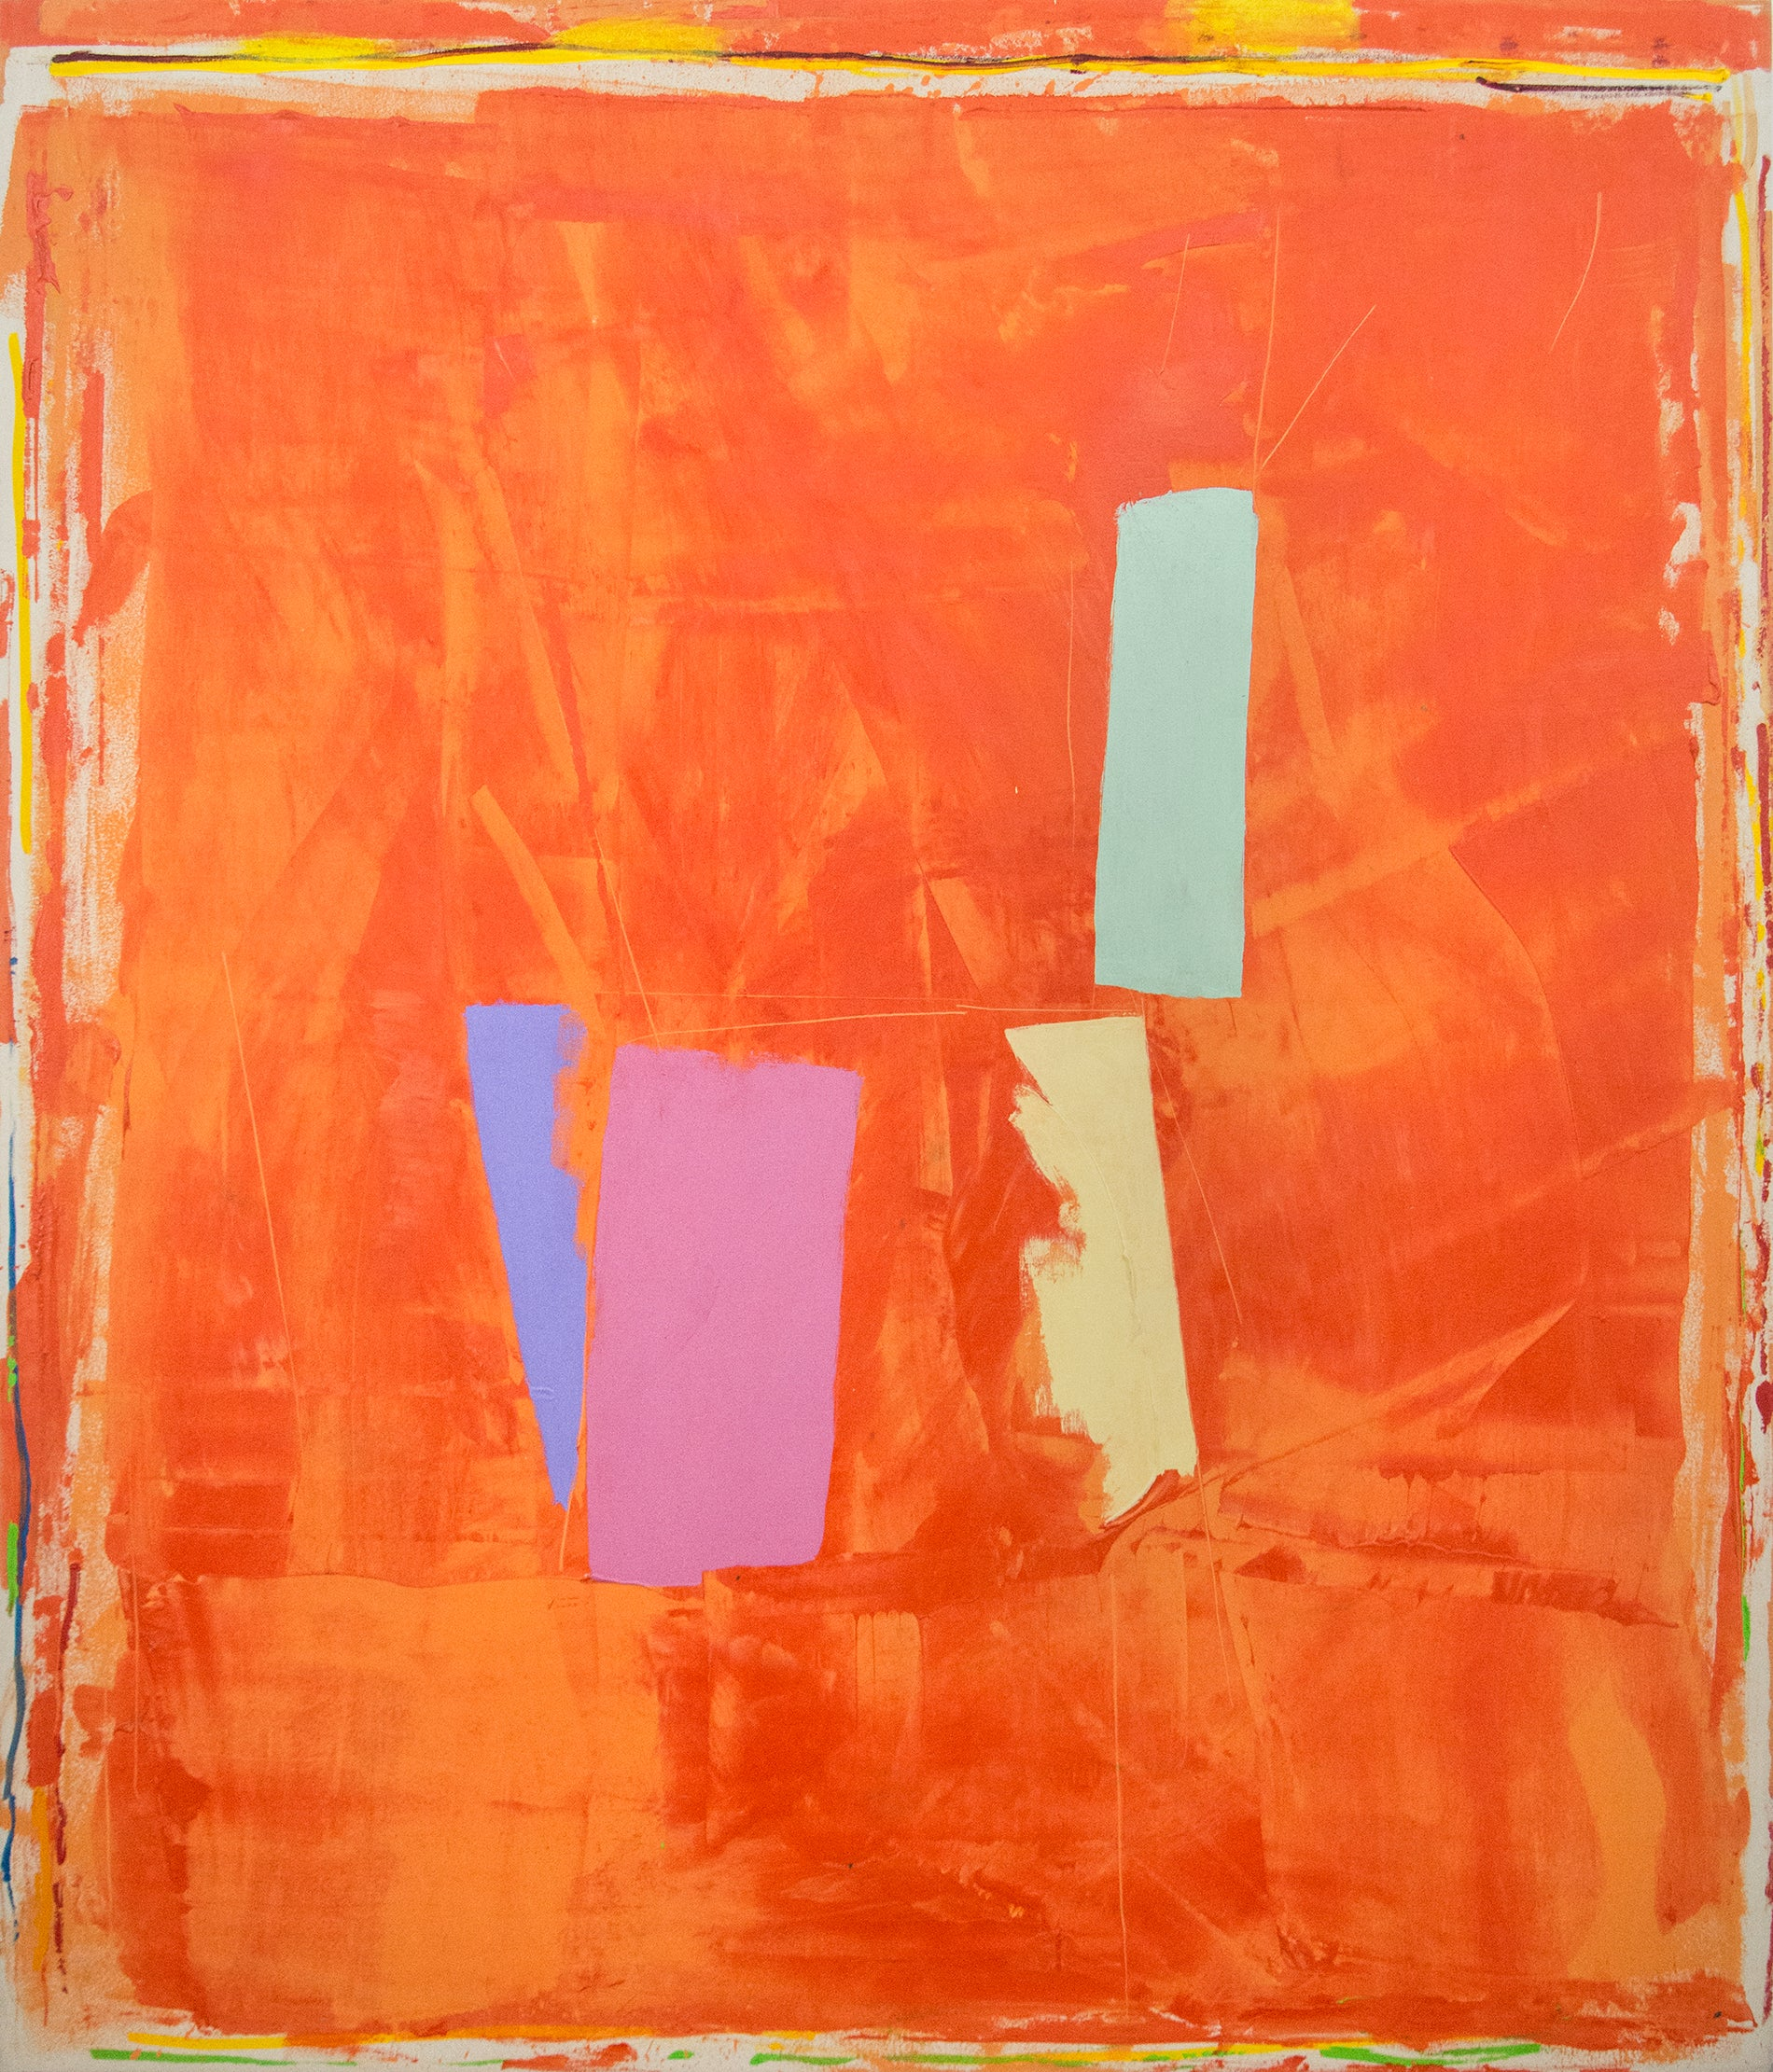 Abstraction in Orange - large, bold, gestural, postmodern, acrylic on canvas